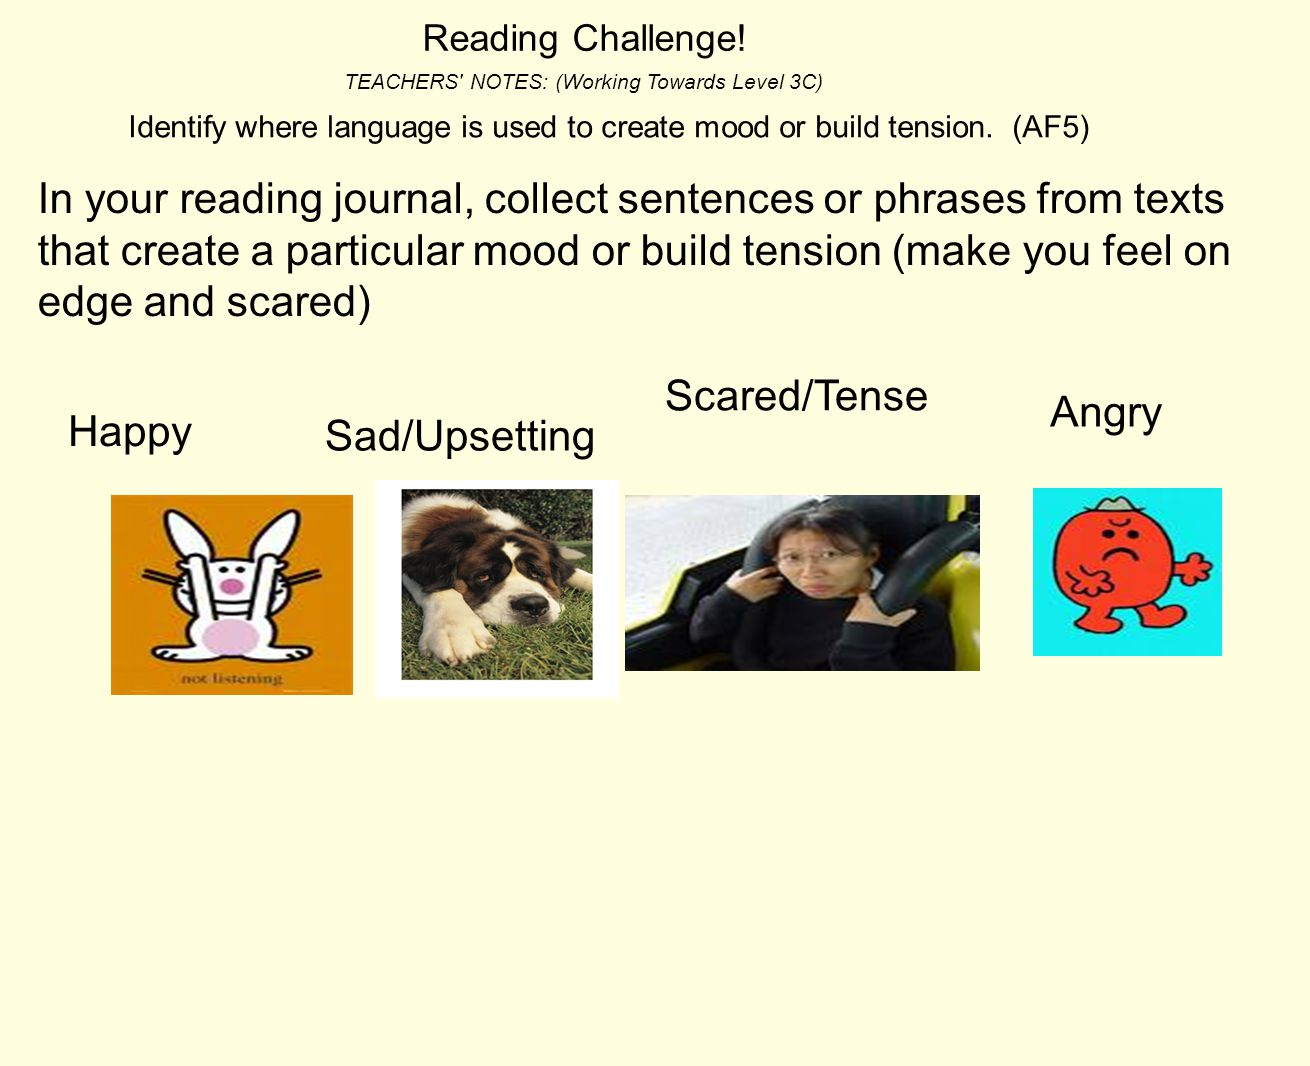 Reading Challenge! TEACHERS NOTES: (Working Towards Level 3C) Identify where language is used to create mood or build tension. (AF5)